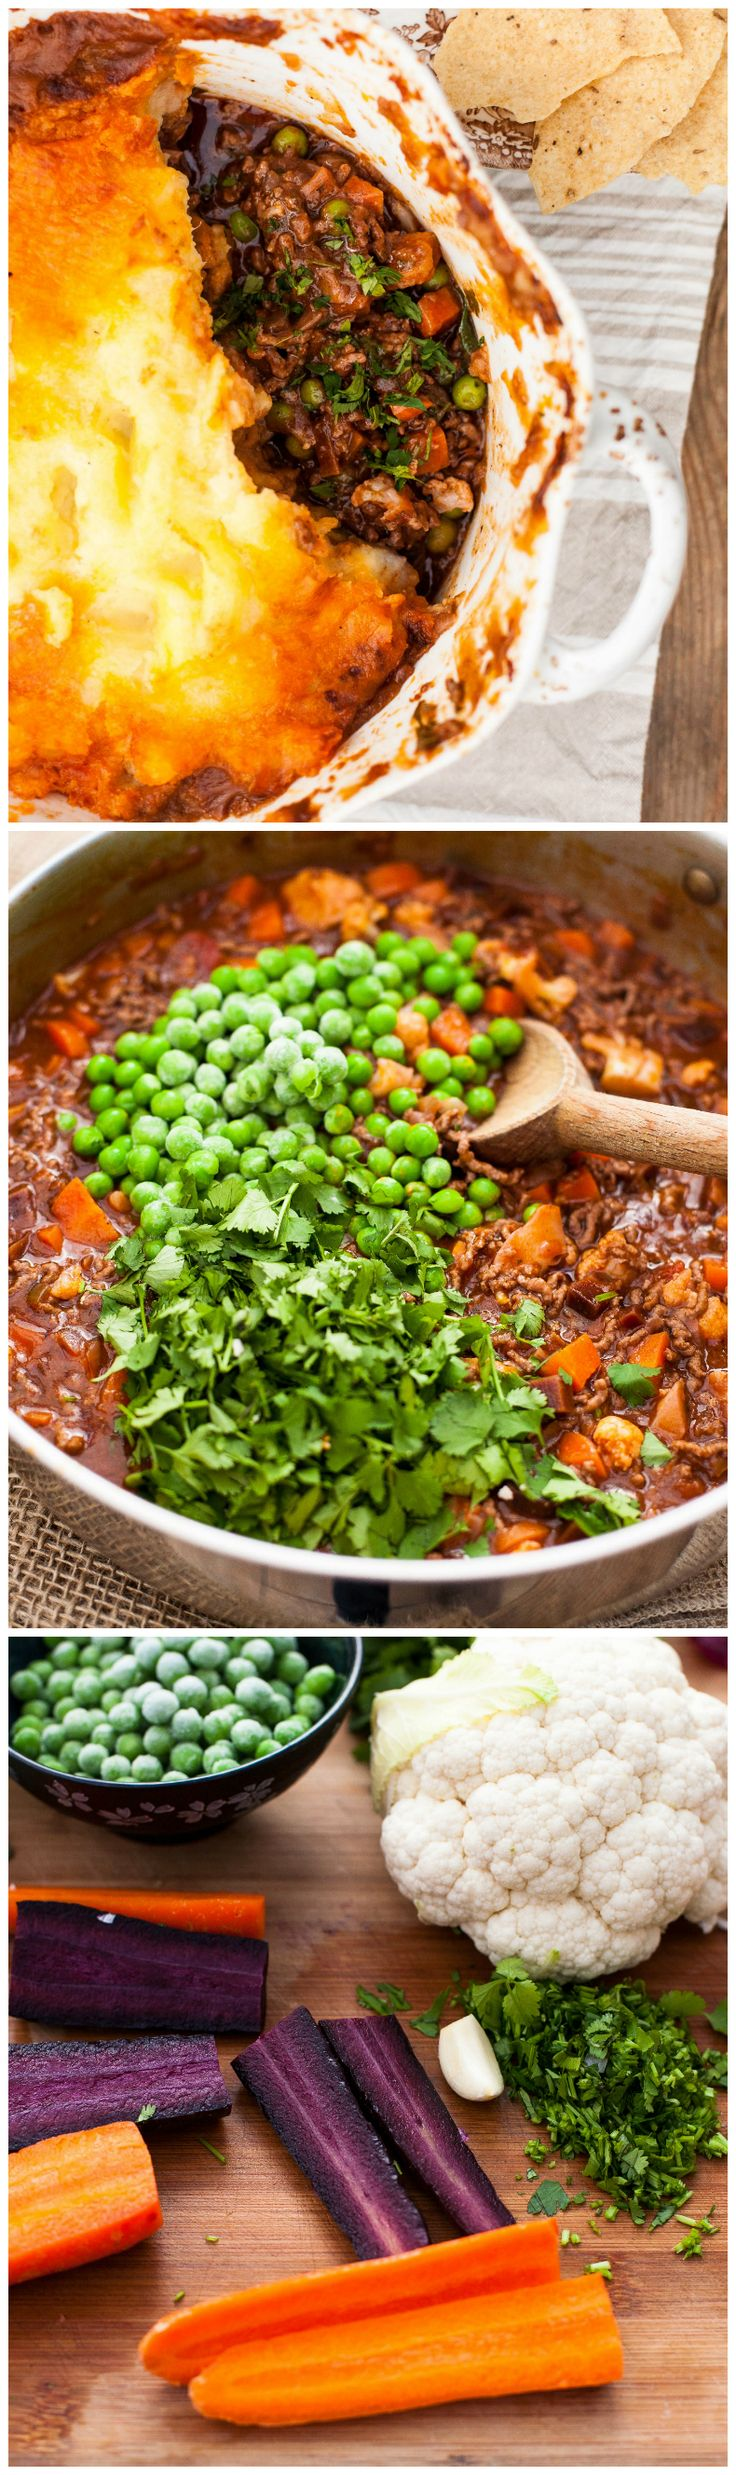 Shepherd's Pie meets Indian curry! Wake up your taste buds with this spiced Shepherd's Pie.